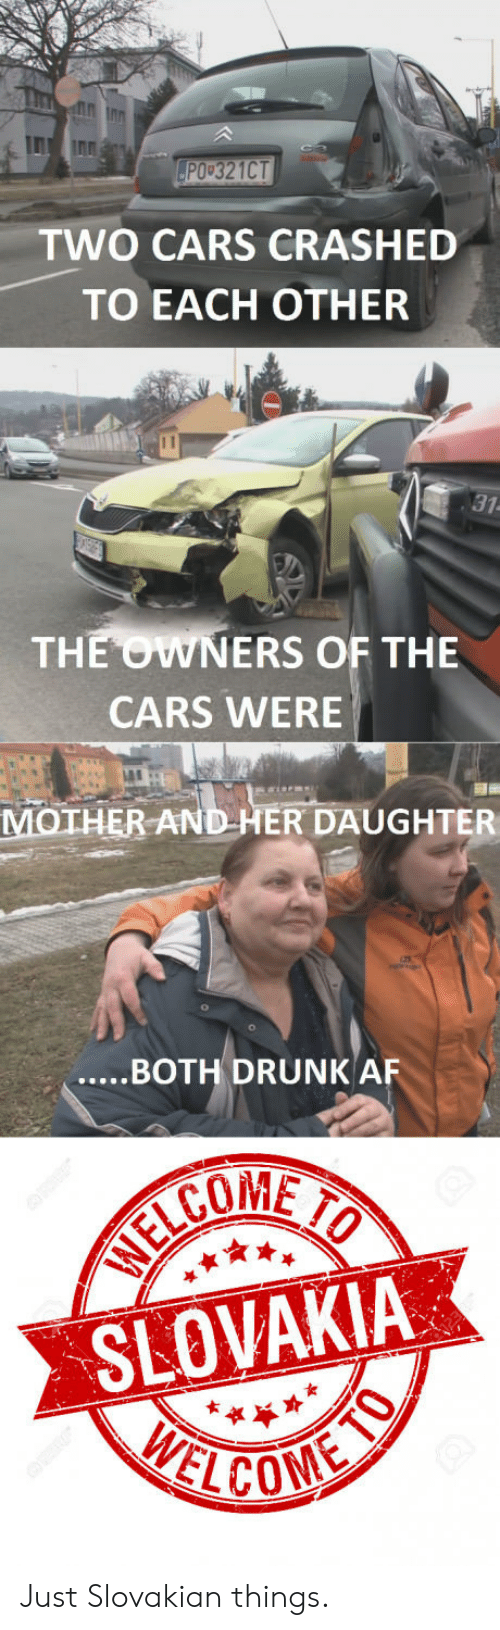 Af, Cars, and Drunk: PO 321CT  TWO CARS CRASHED  TO EACH OTHER  31  THE OWNERS OF THE  CARS WERE  MOTHER AND HER DAUGHTER  .BOTH DRUNK AF  COME  SLOVAKIA  女 Just Slovakian things.